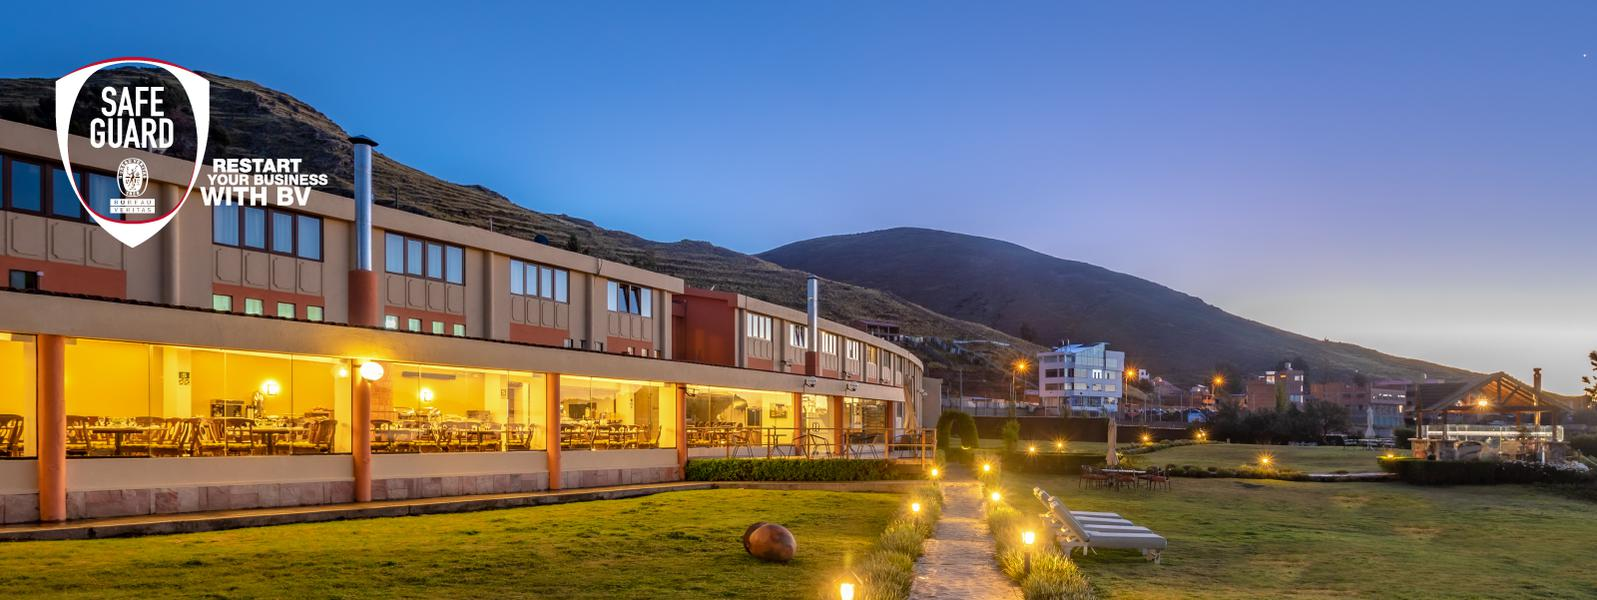 Inspired by your safety! - Sonesta Hotel Posadas del Inca Puno - Puno